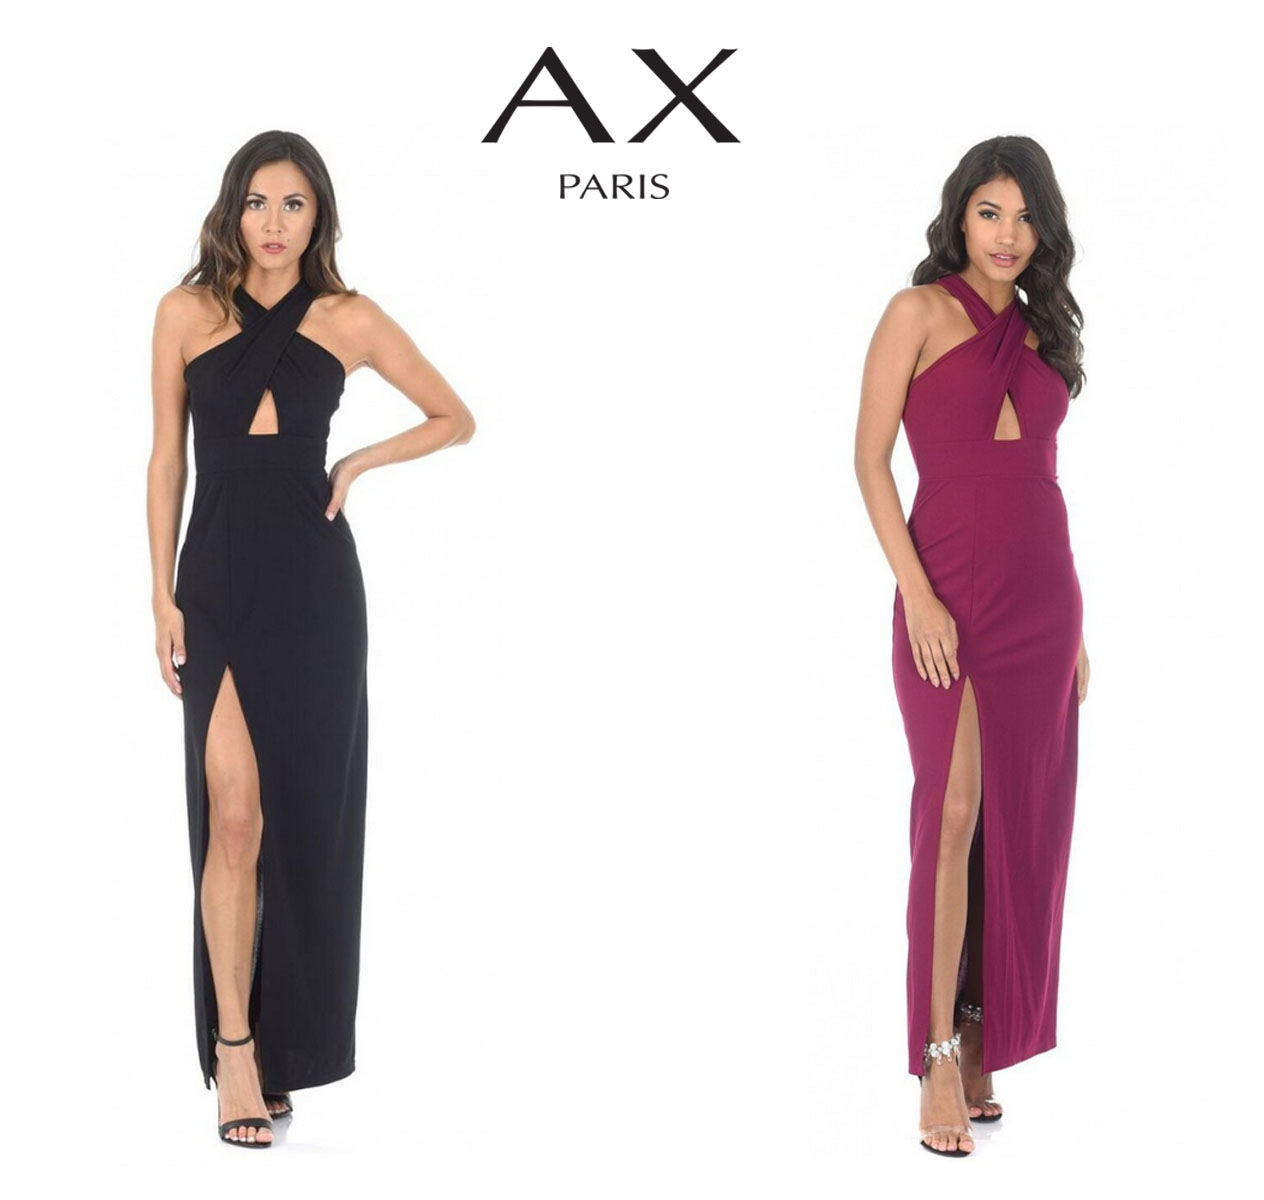 e7f58c27d89 Get ready to steal the show with this black maxi dress with a thigh high  split. Featuring a glamorous cross front style guaranteed to turn heads.